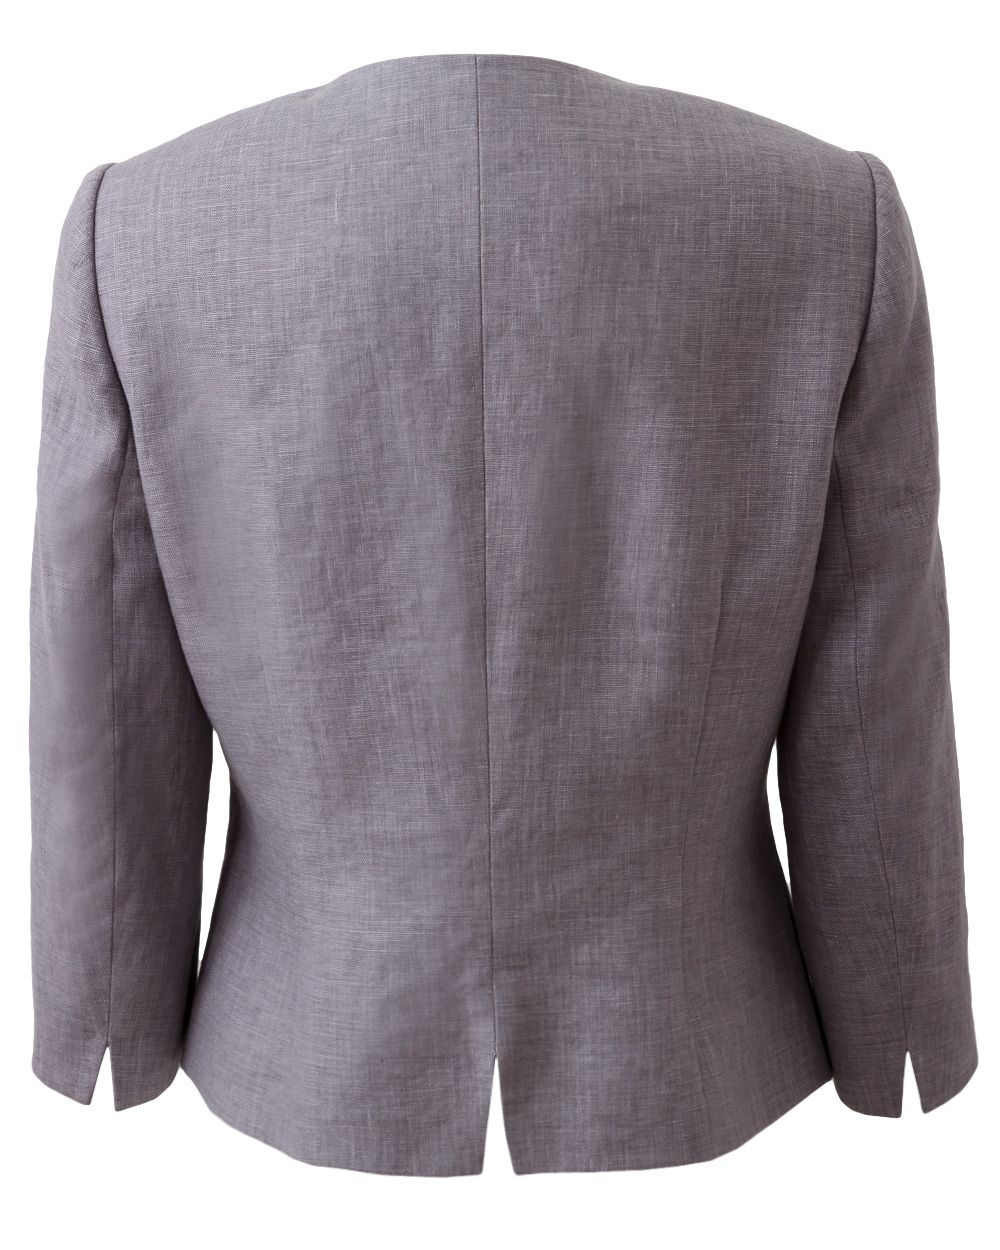 Victoire collarless linen jacket